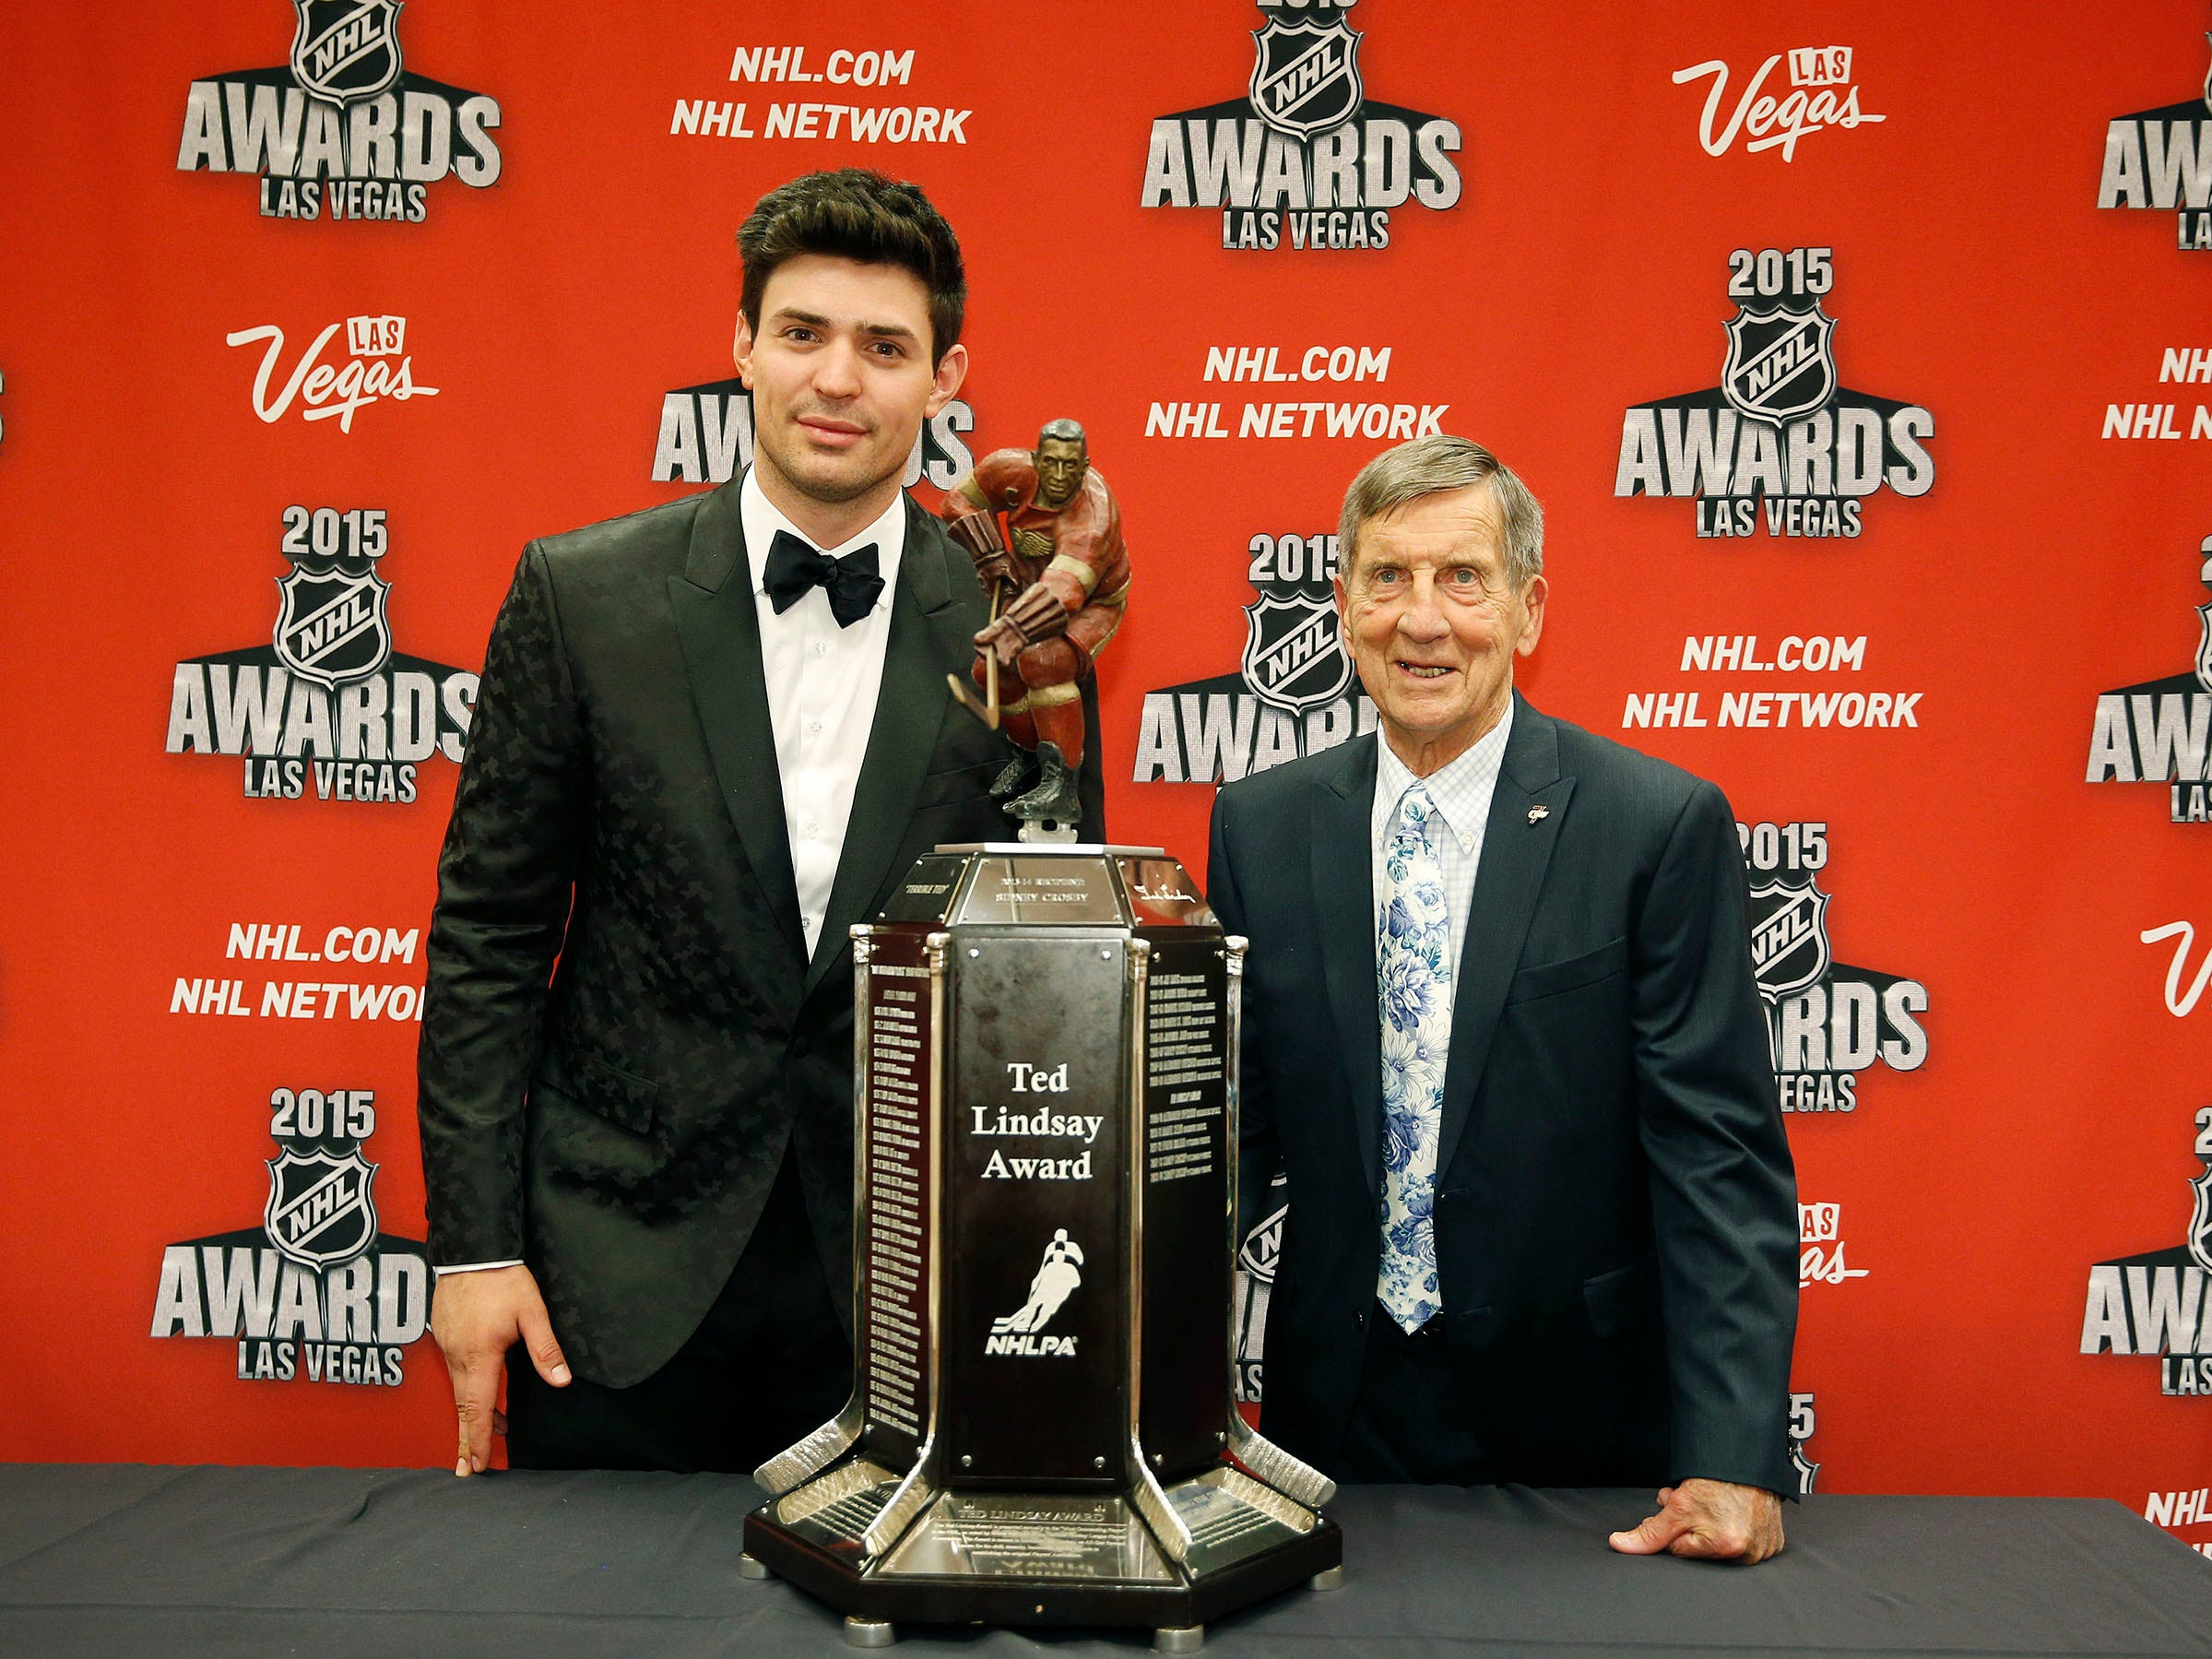 Carey Price of the Montreal Canadiens and Ted Lindsay, with the Ted Lindsay award pose after Price won the award at the NHL Awards show Wednesday, June 24, 2015, in Las Vegas.